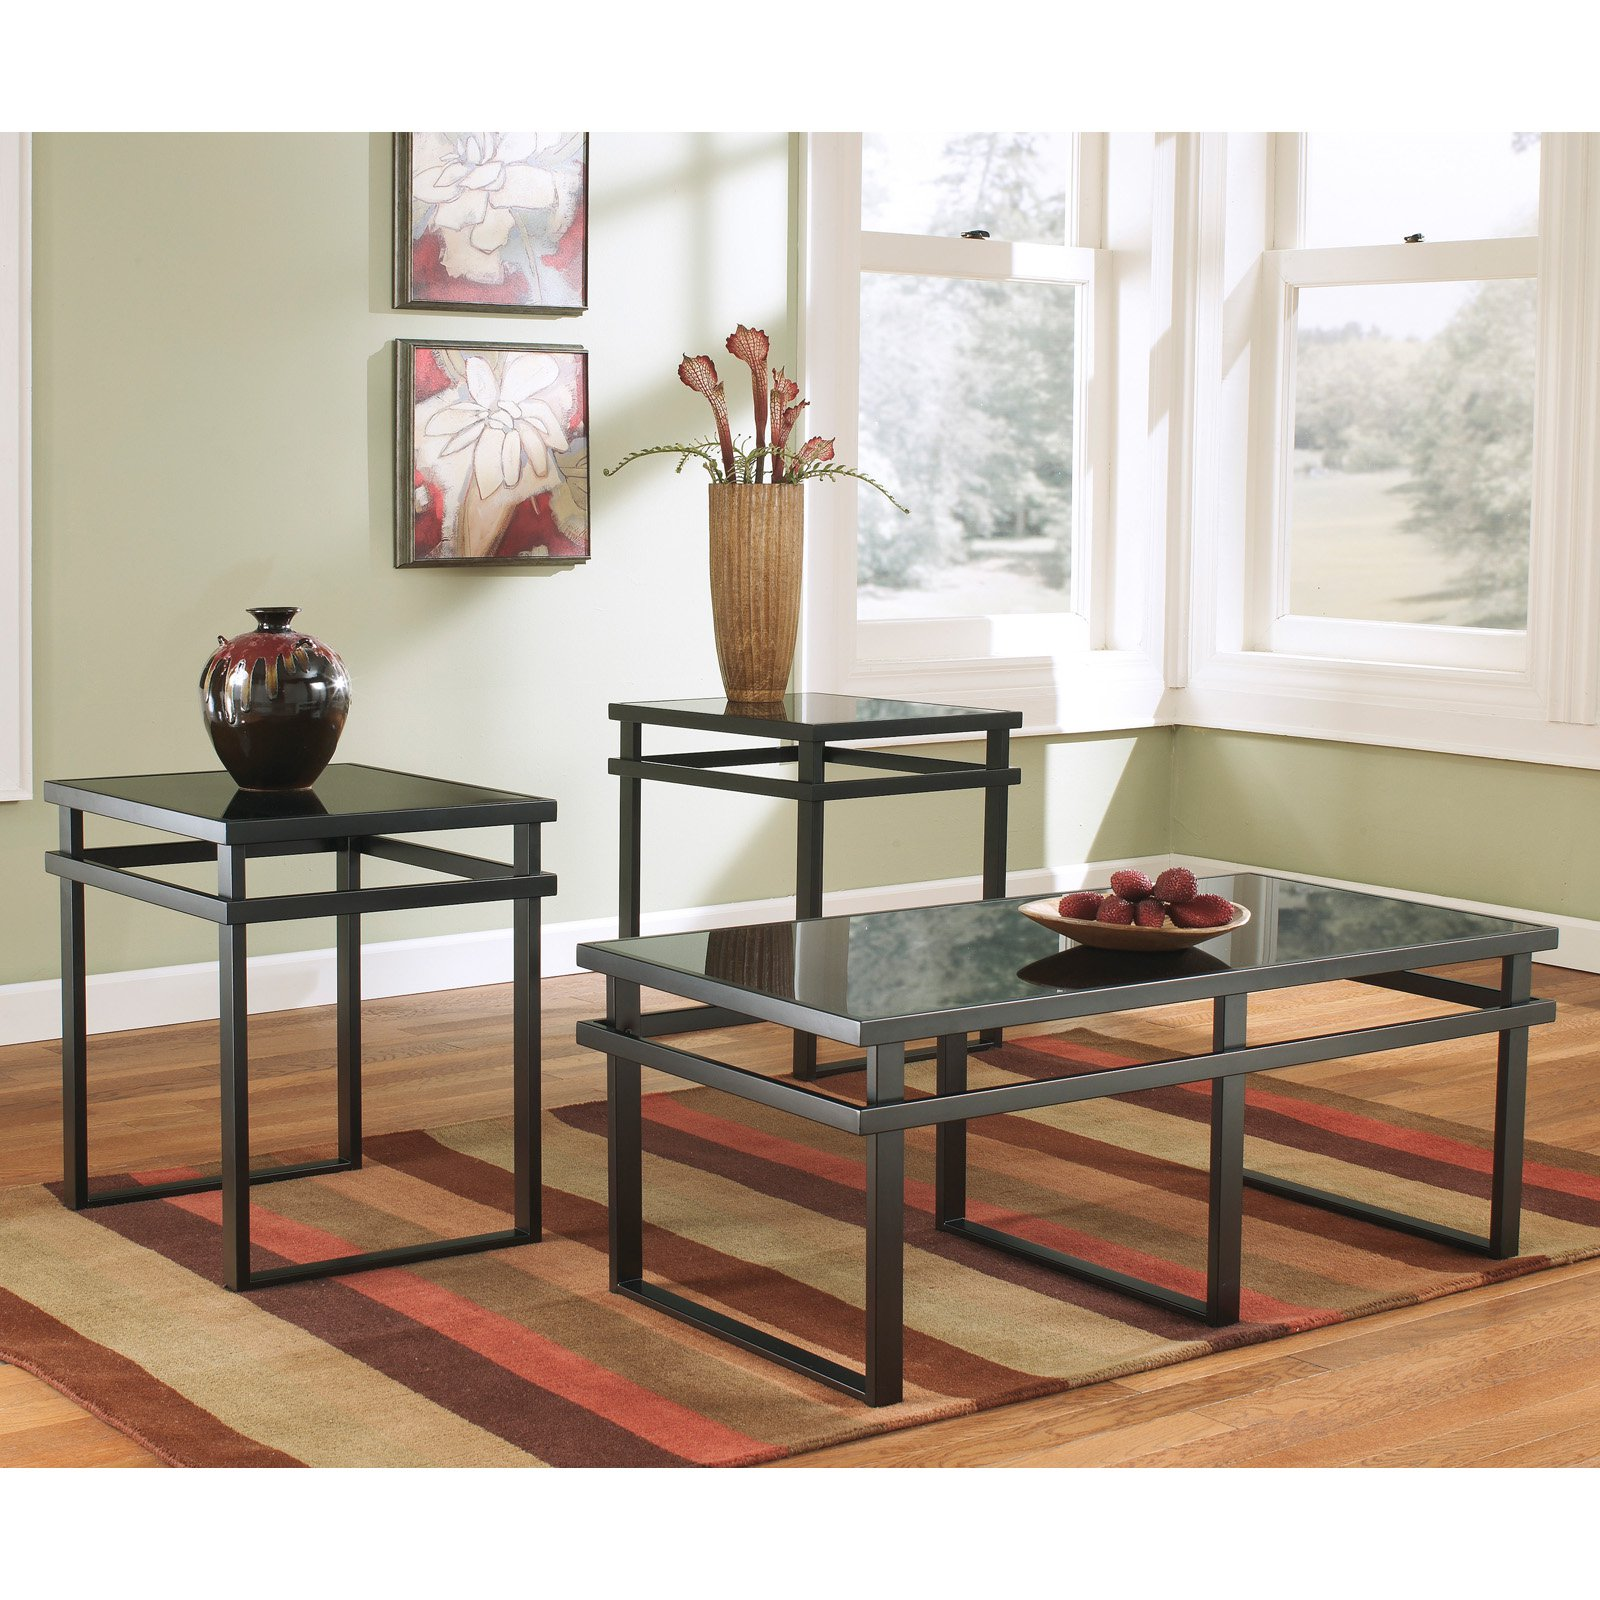 Signature Design By Ashley Laney Black Occasional Table - Set of 3